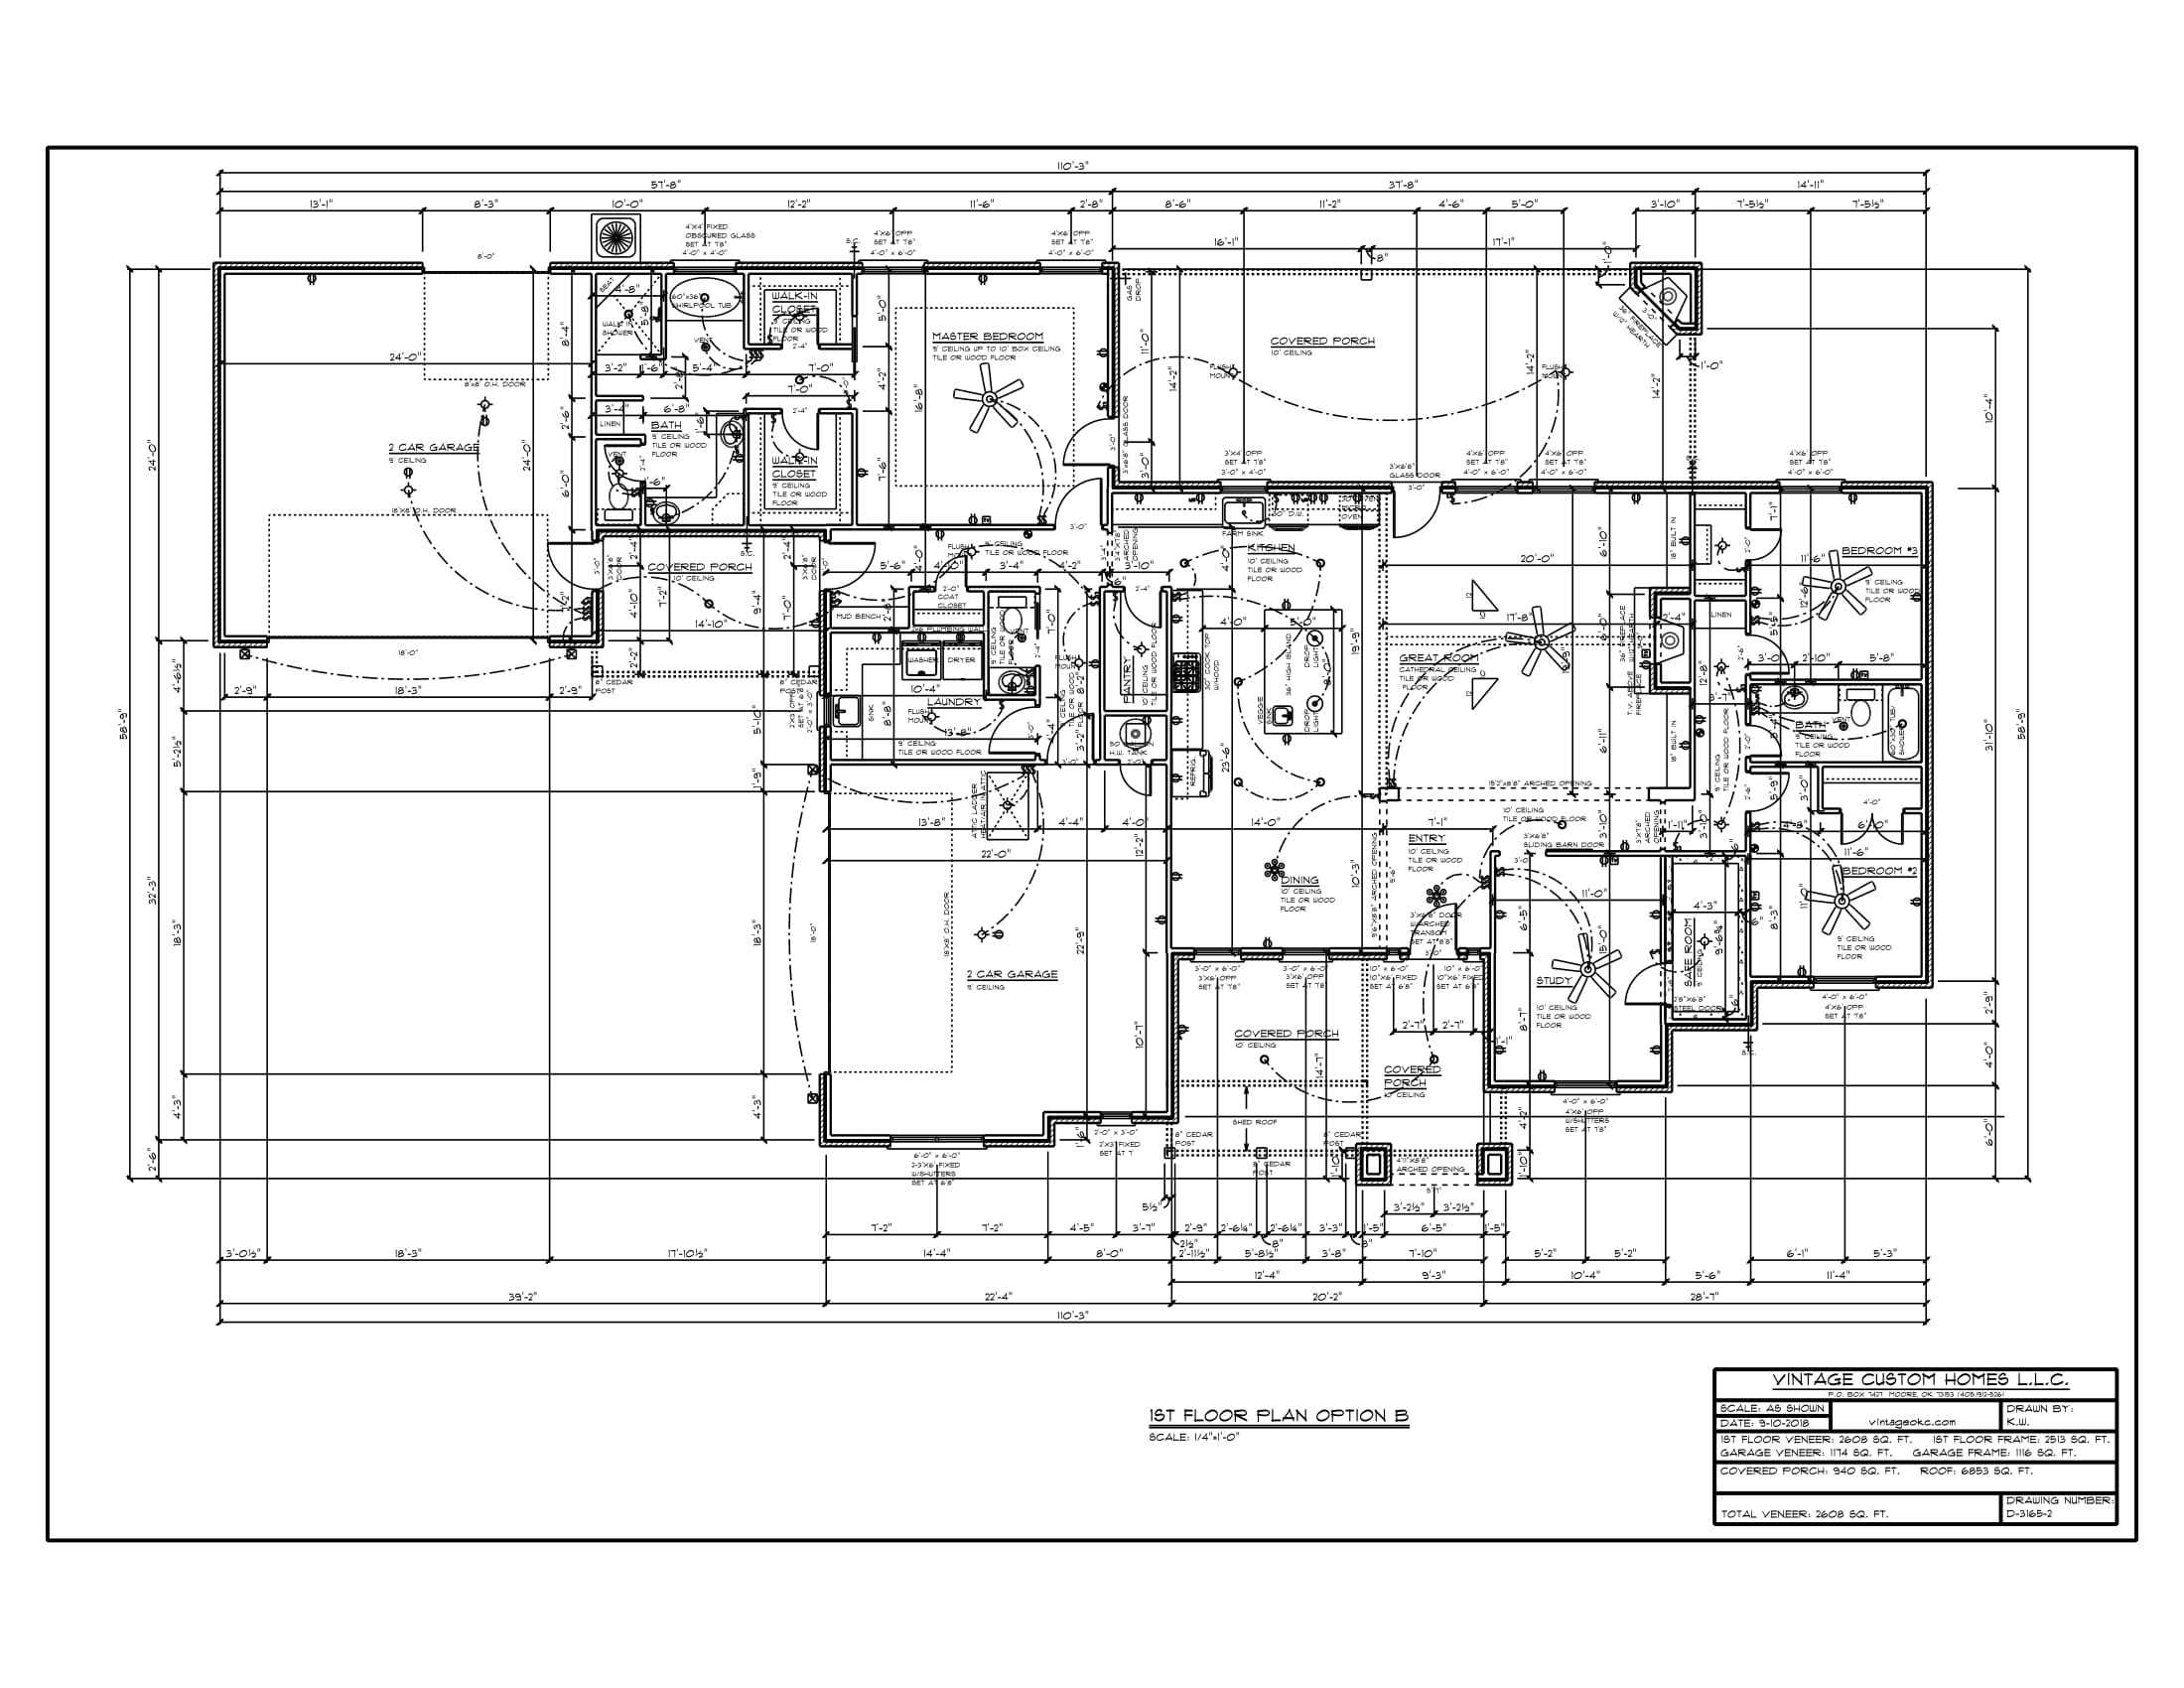 Floor Plan D-3165 2608 sqft